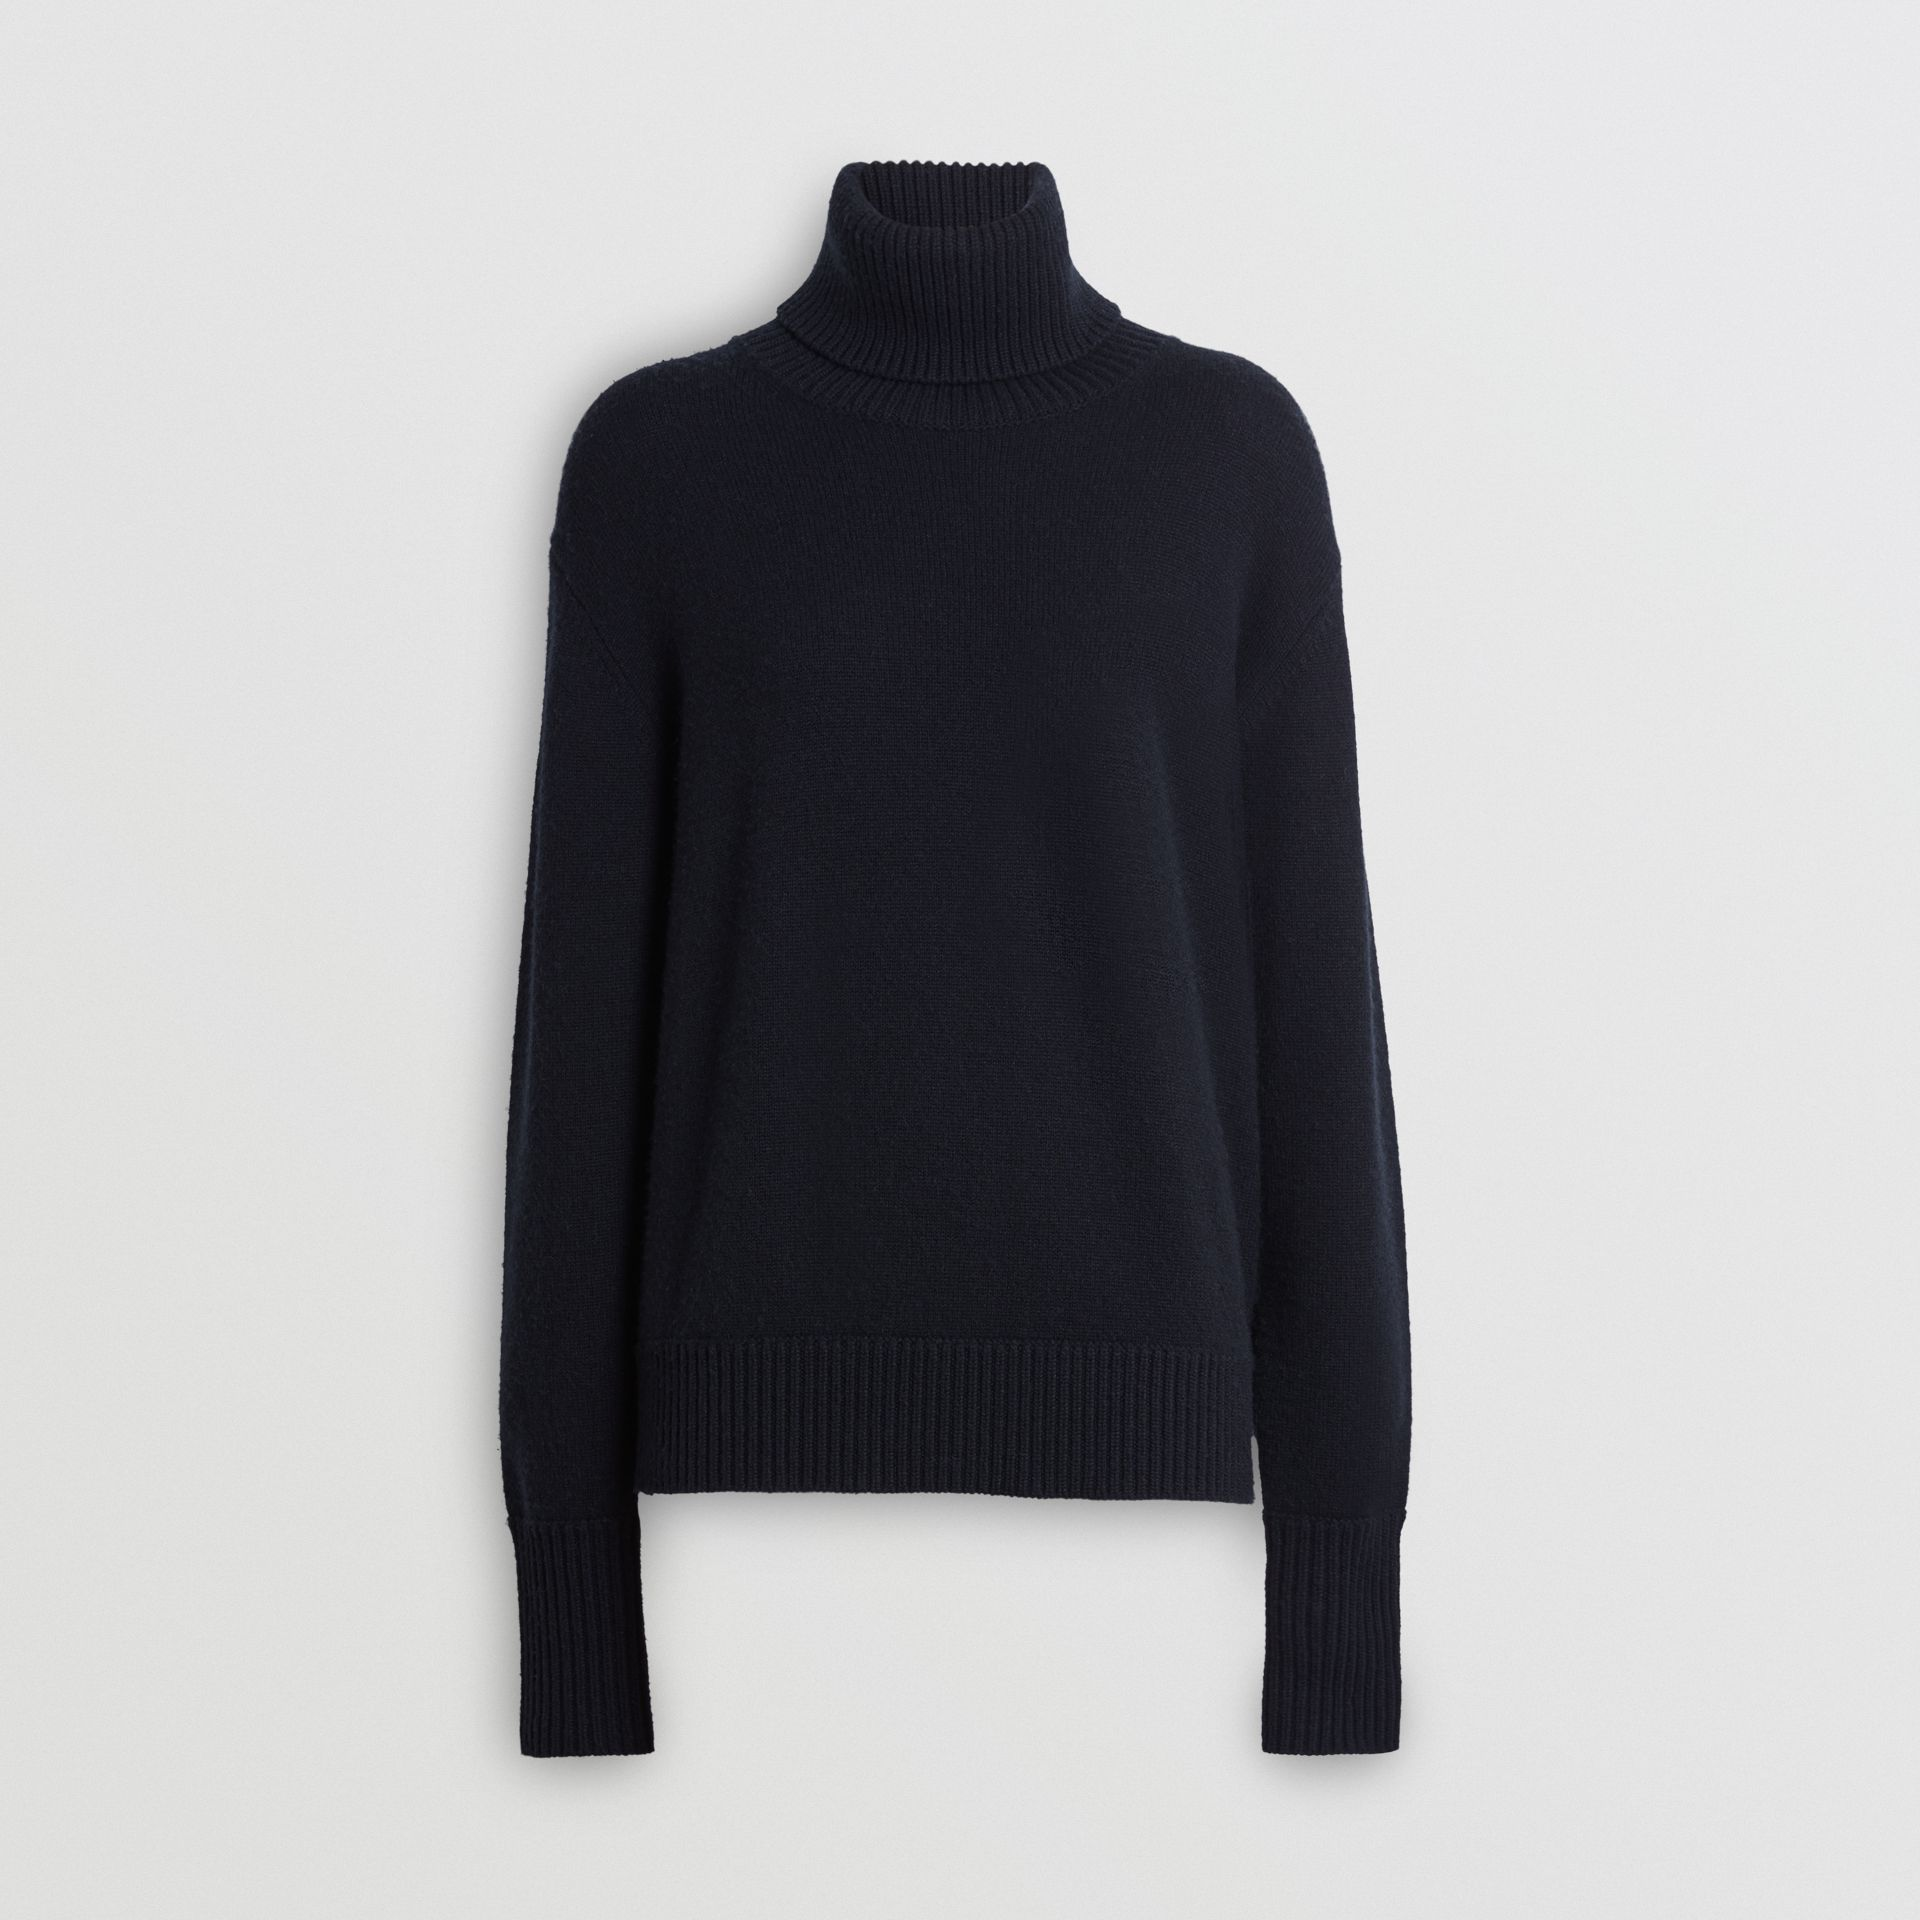 Embroidered Crest Cashmere Roll-neck Sweater in Navy - Women | Burberry Australia - gallery image 3